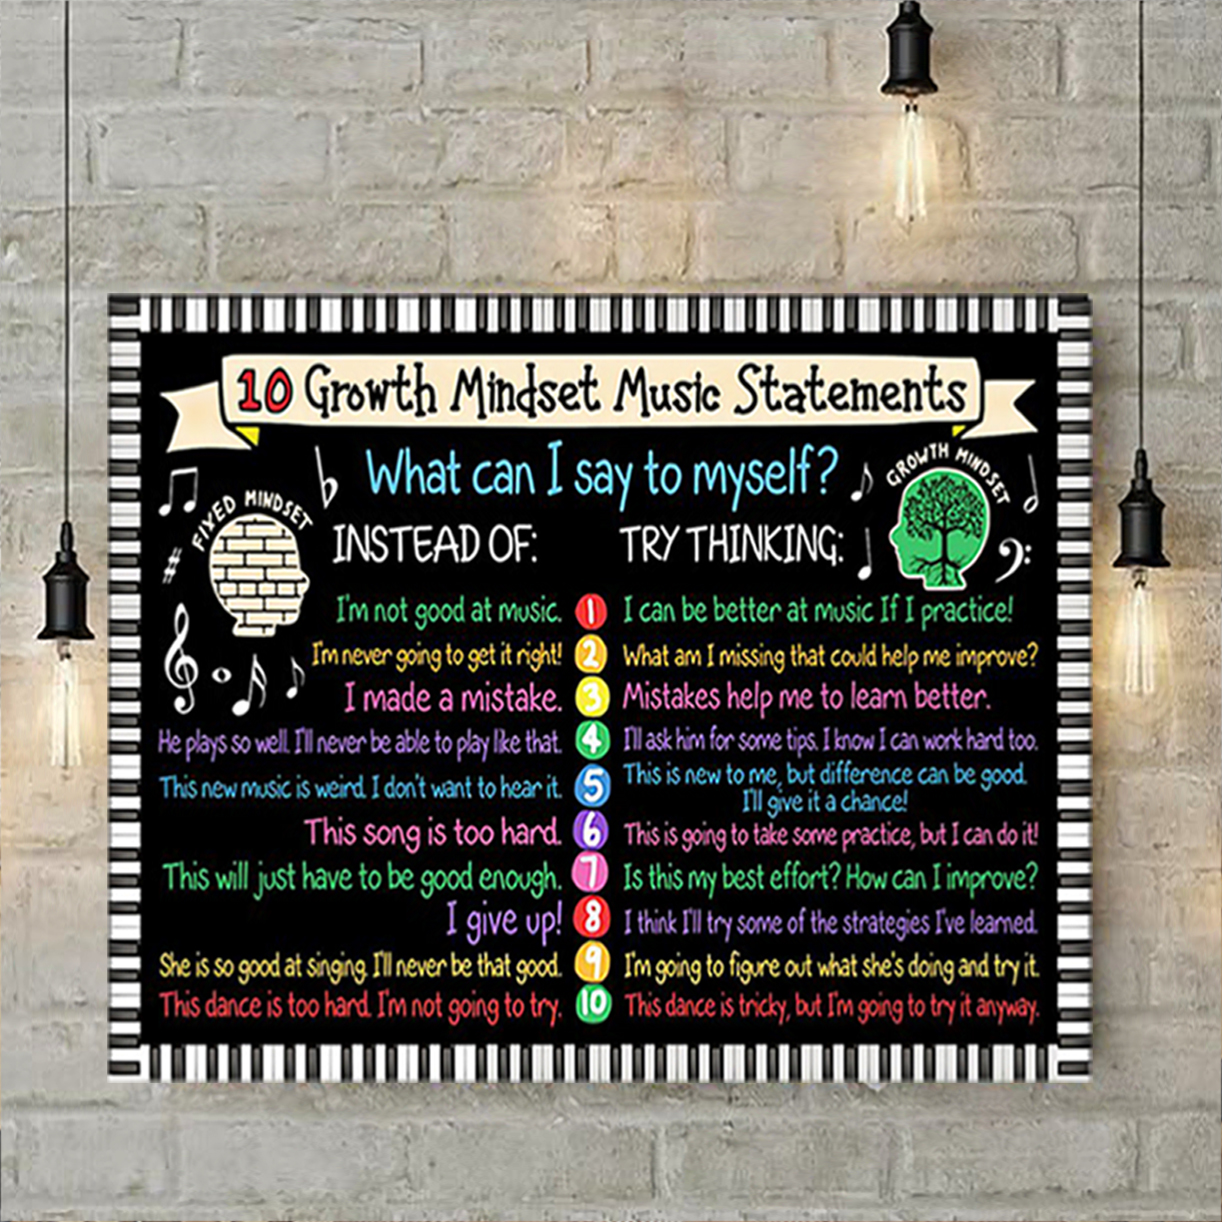 10 growth mindset music statements poster A3